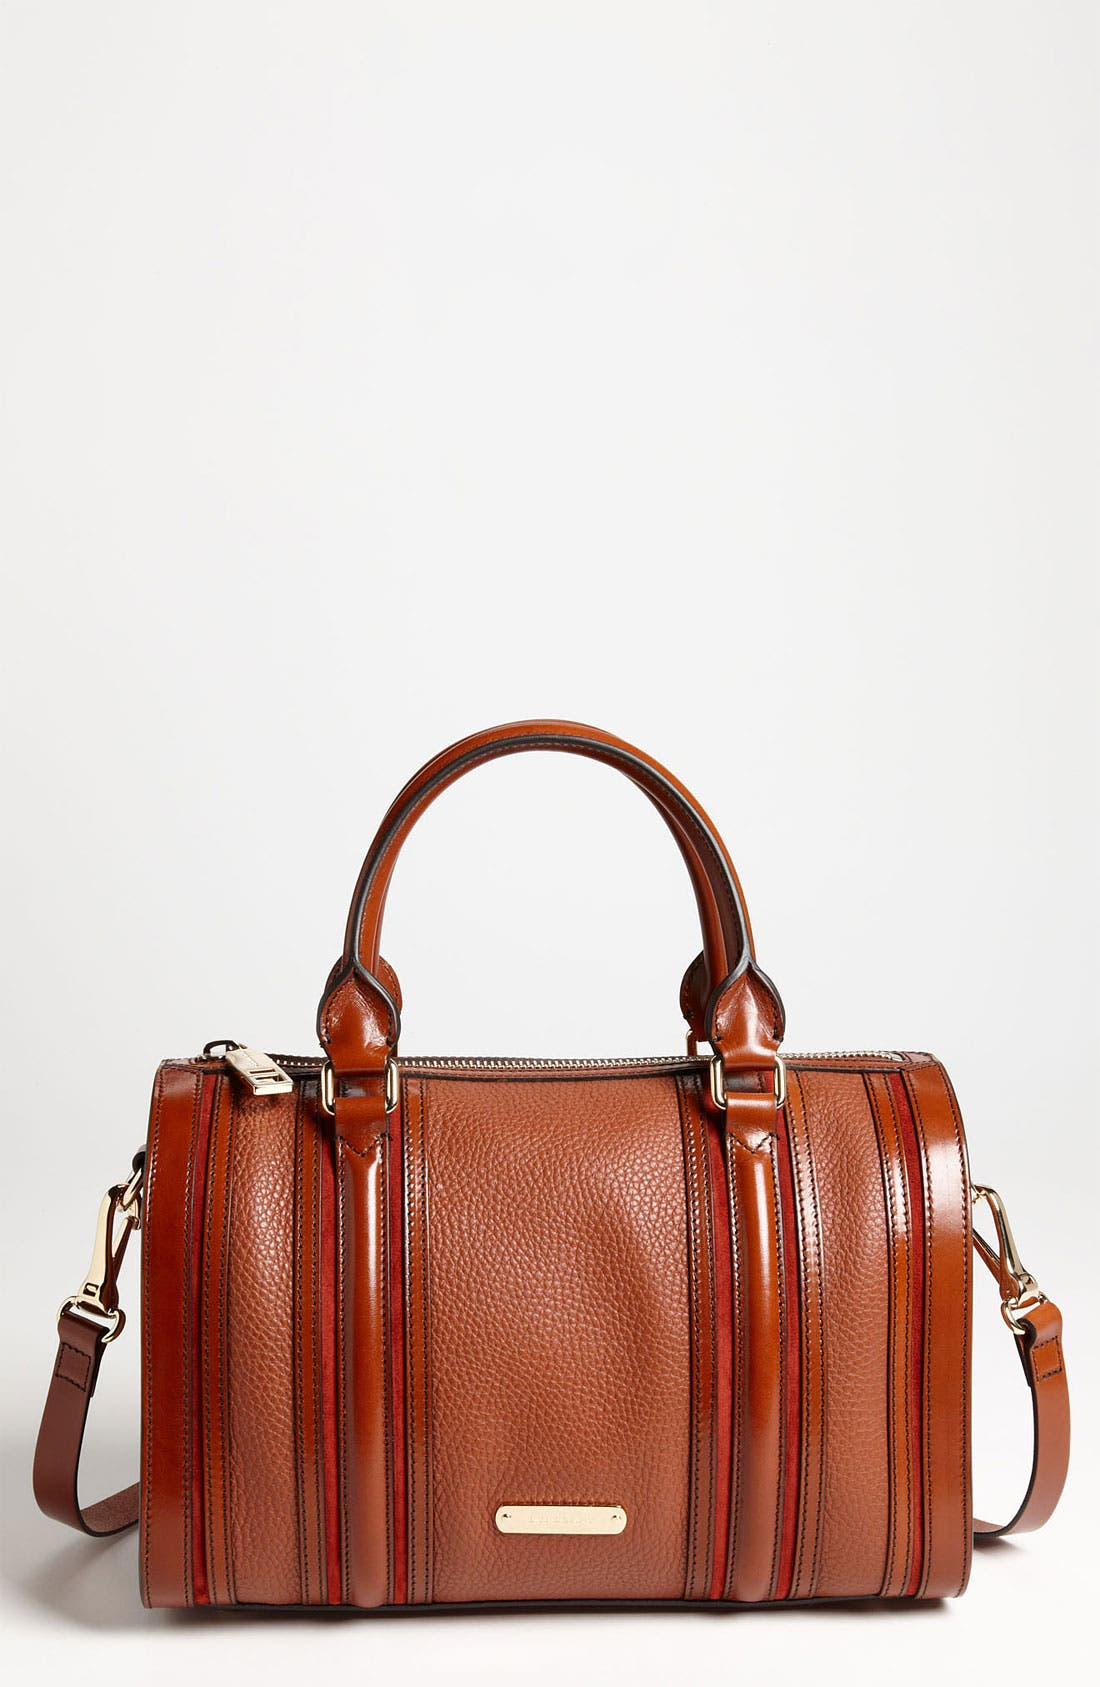 Alternate Image 1 Selected - Burberry Leather Satchel